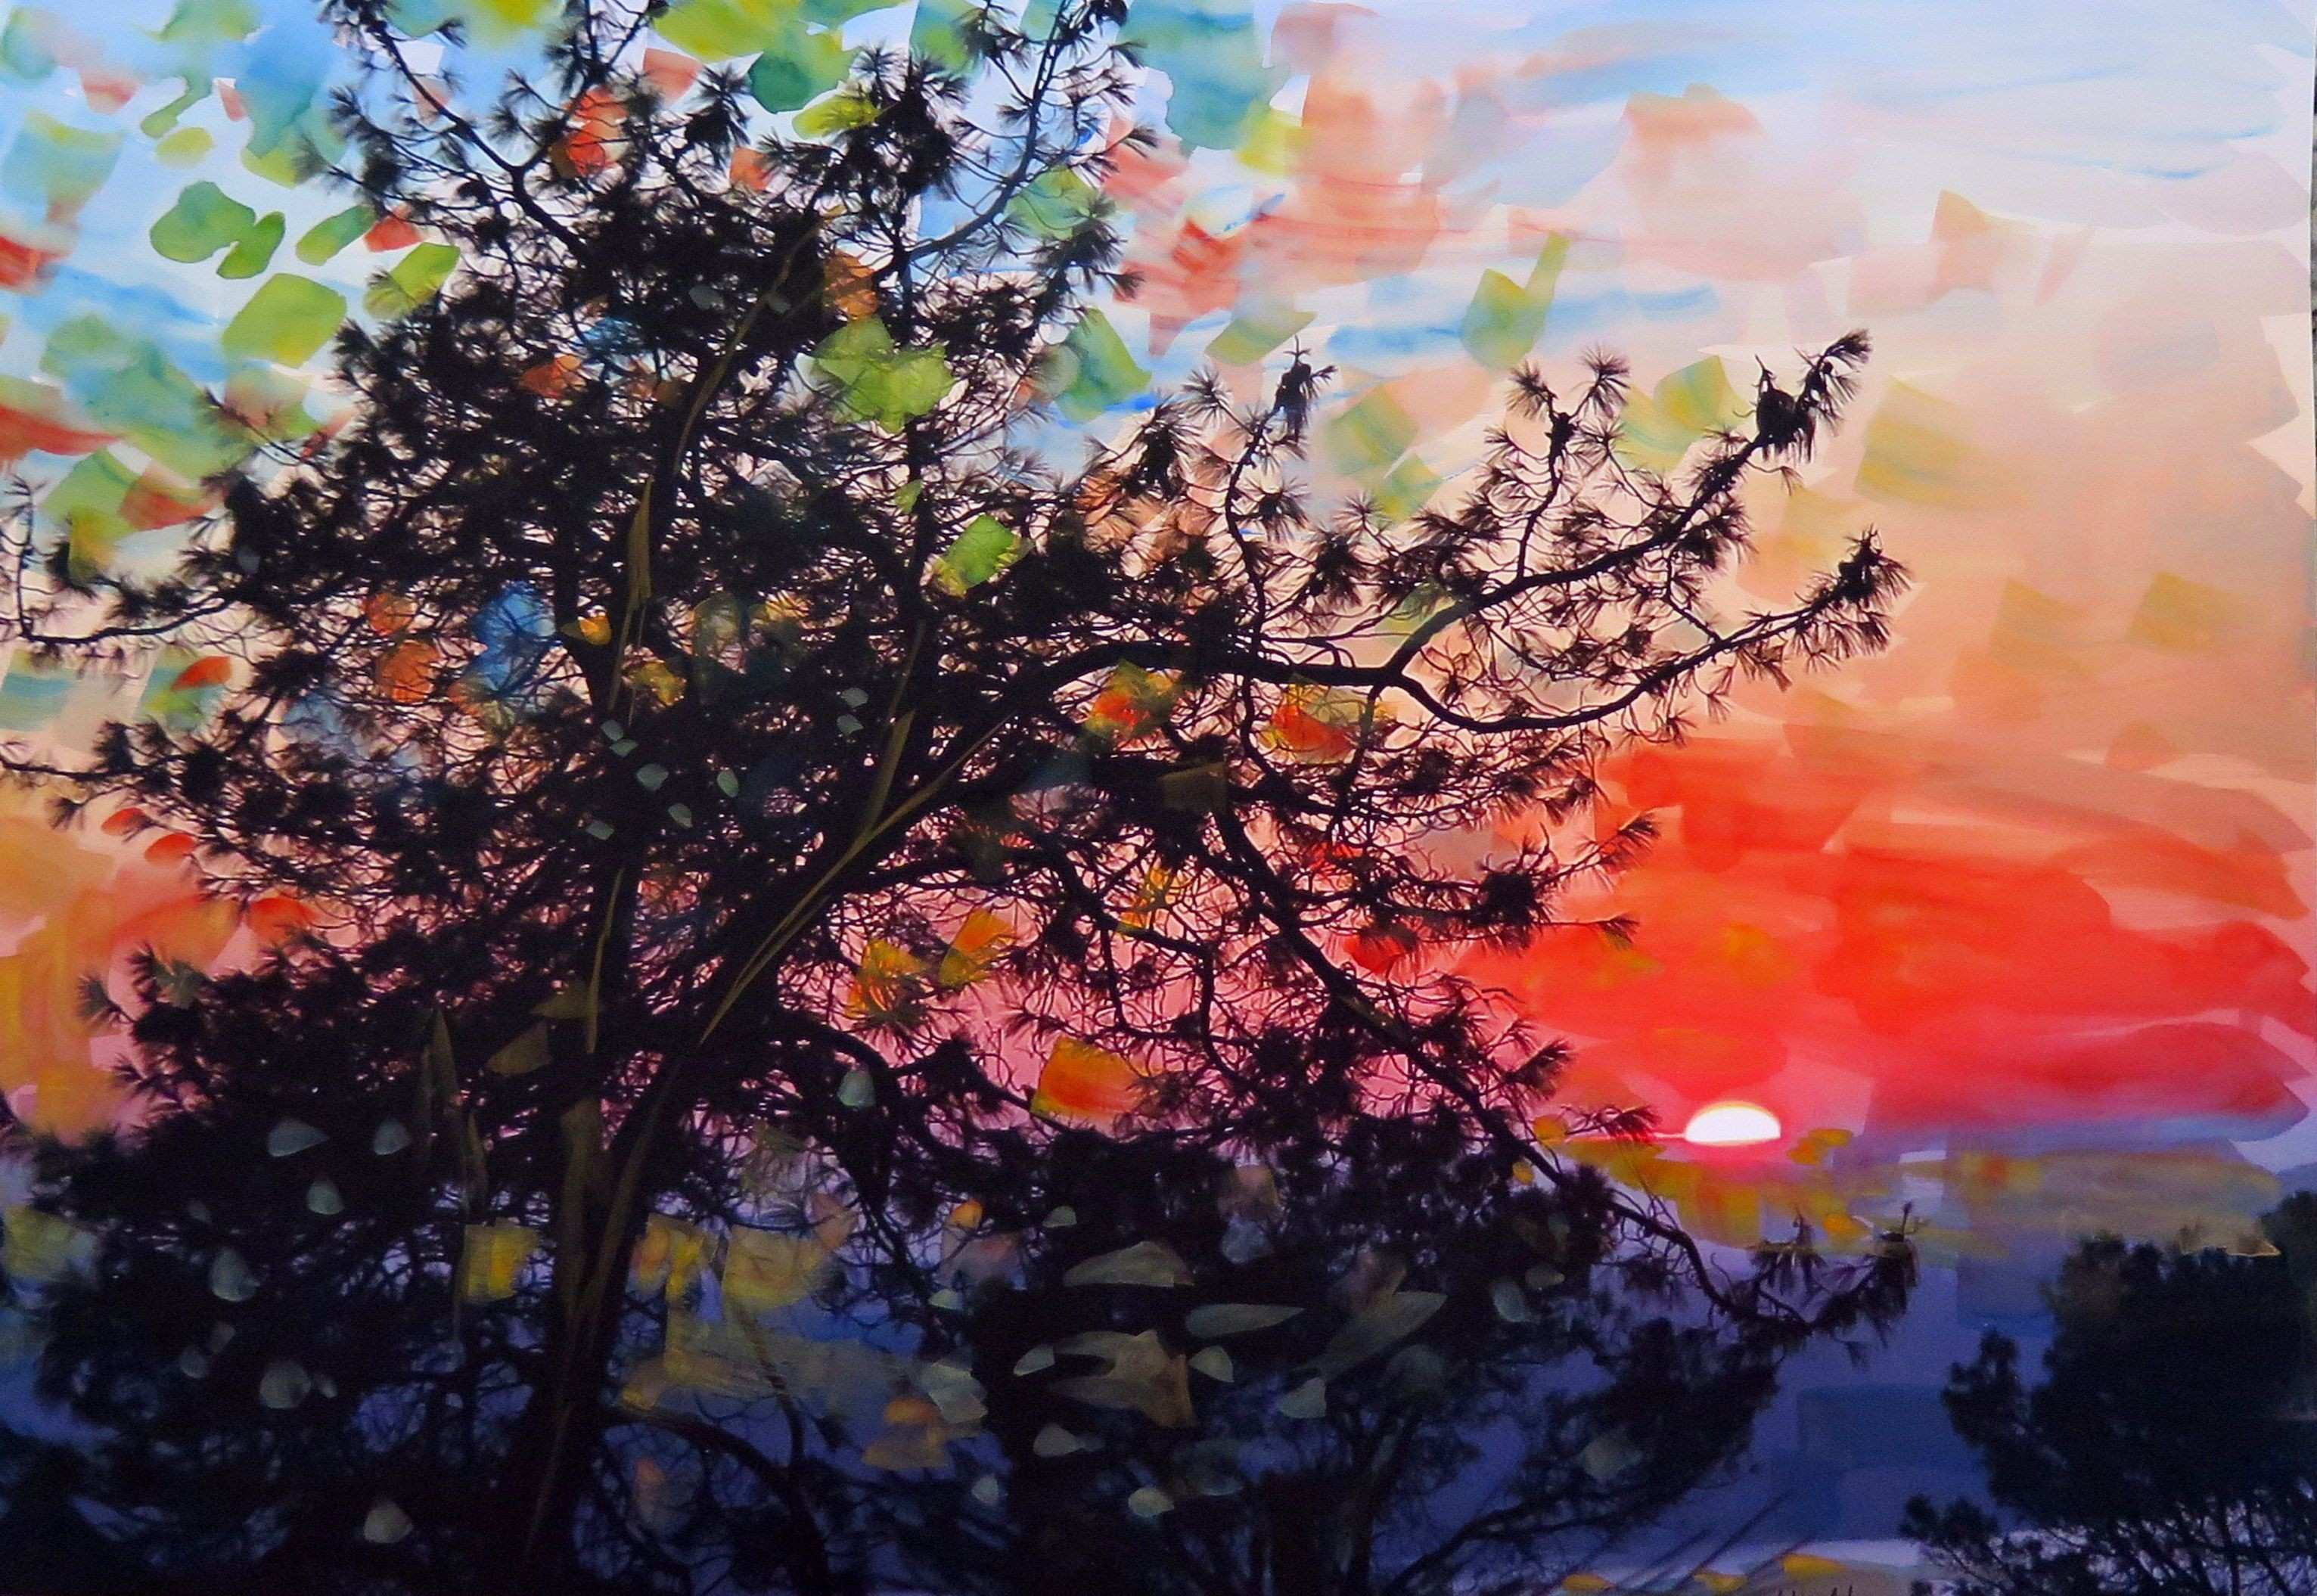 For Sale California February Sunset by Jean Vadal Smith Bentson